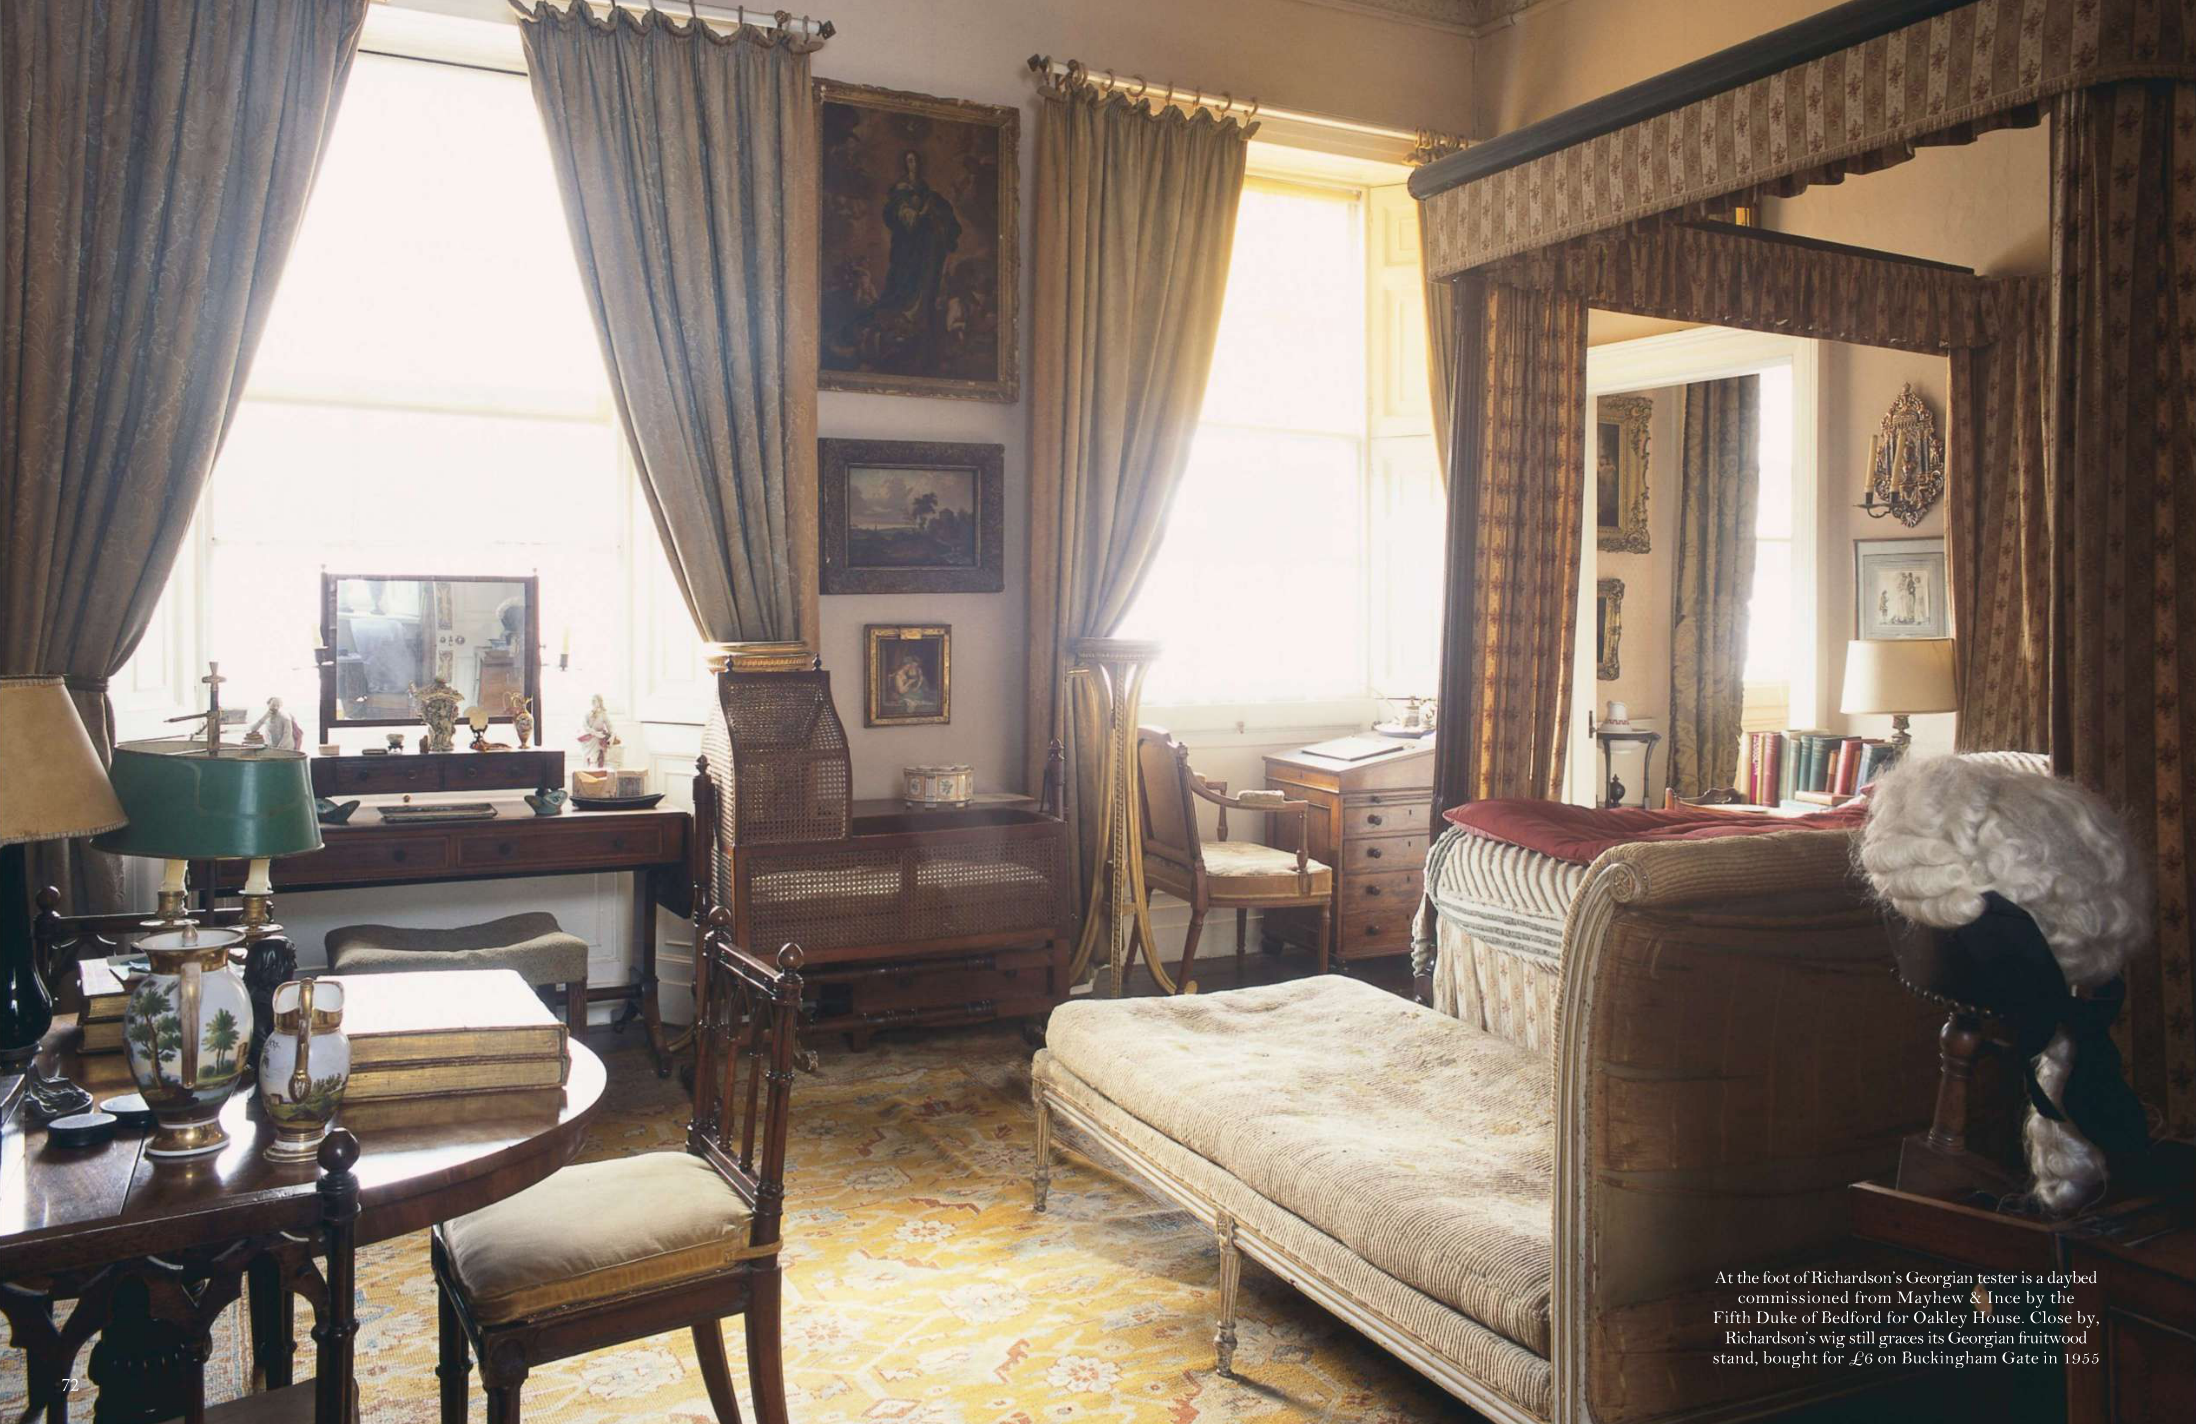 Sir albert richardson and the house that forgot time on for Interieur in english